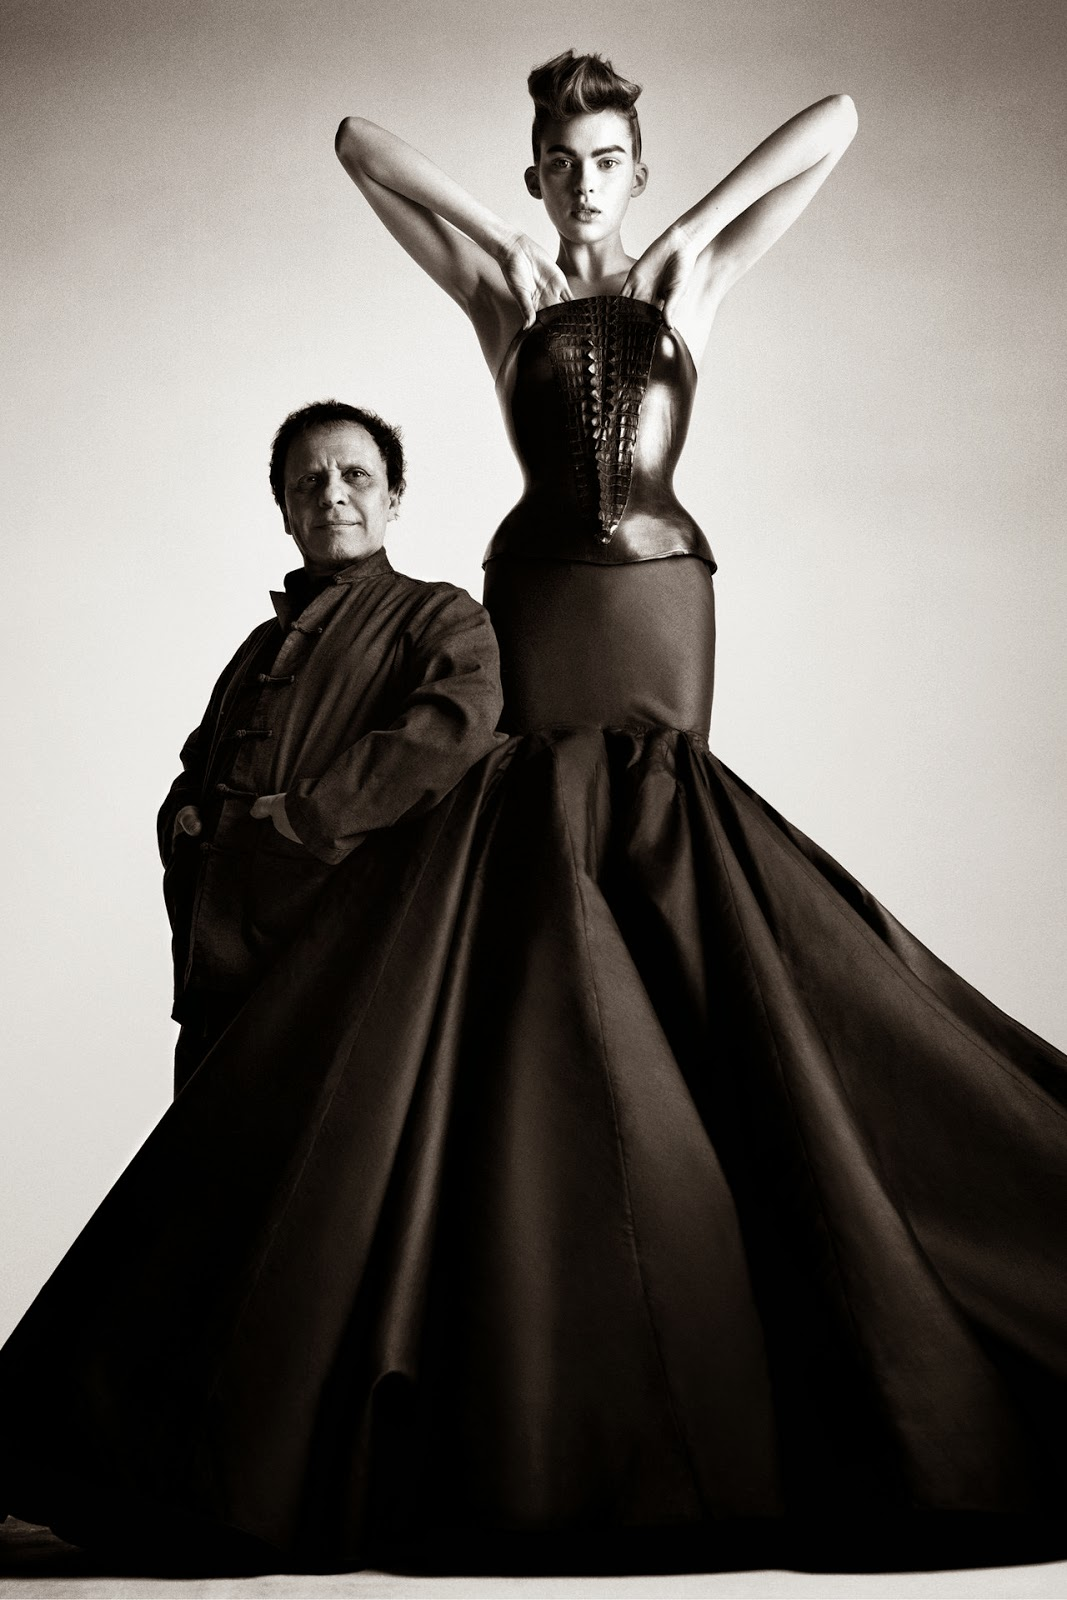 Azzedine Alaïa on Fashion and Cookies fashion and beauty blog